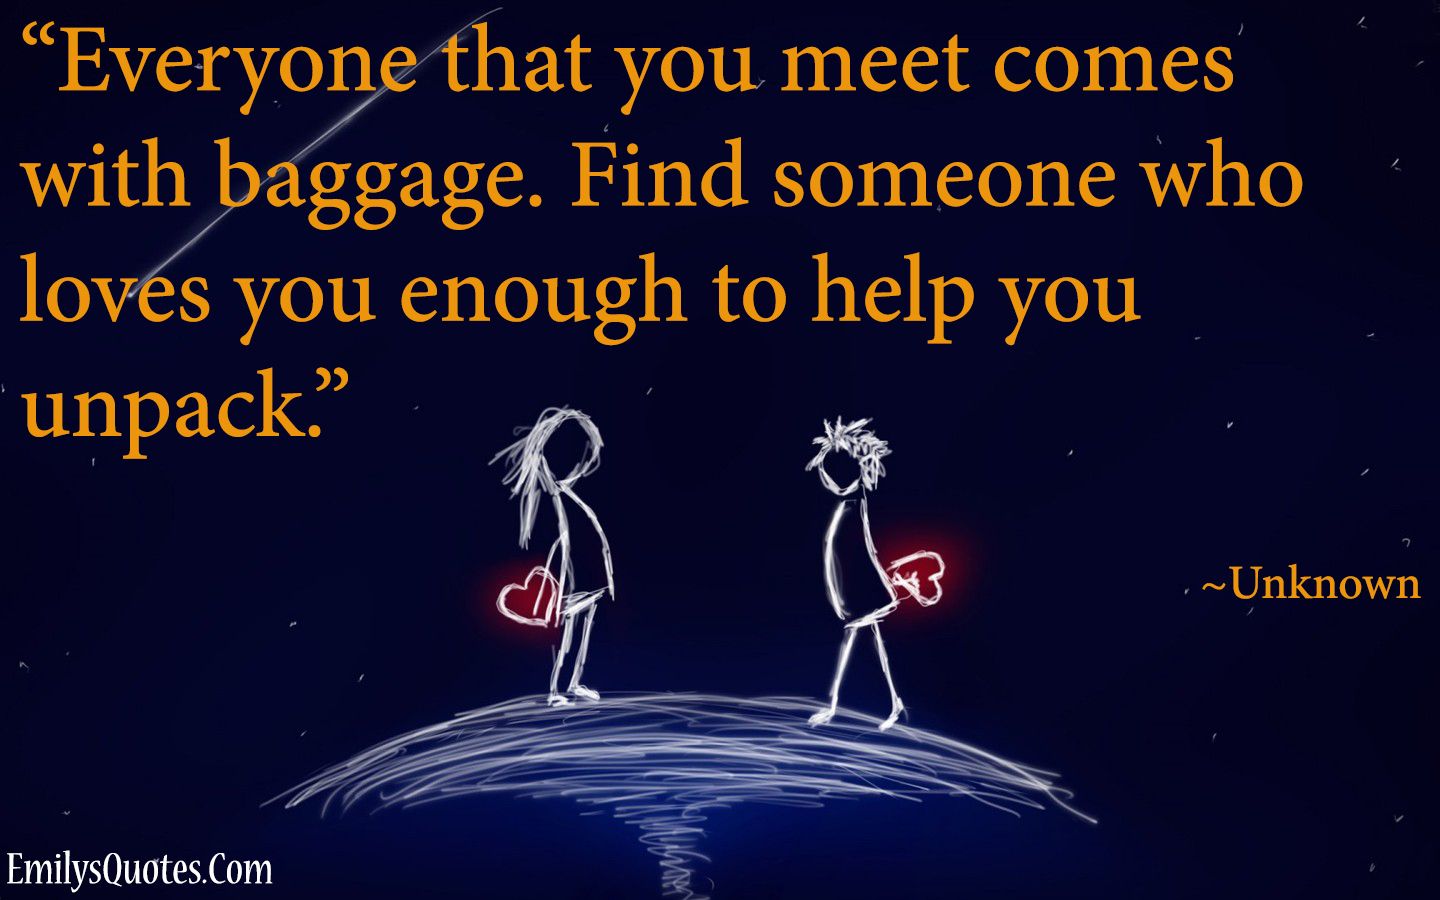 Everyone that you meet comes with baggage. Find someone